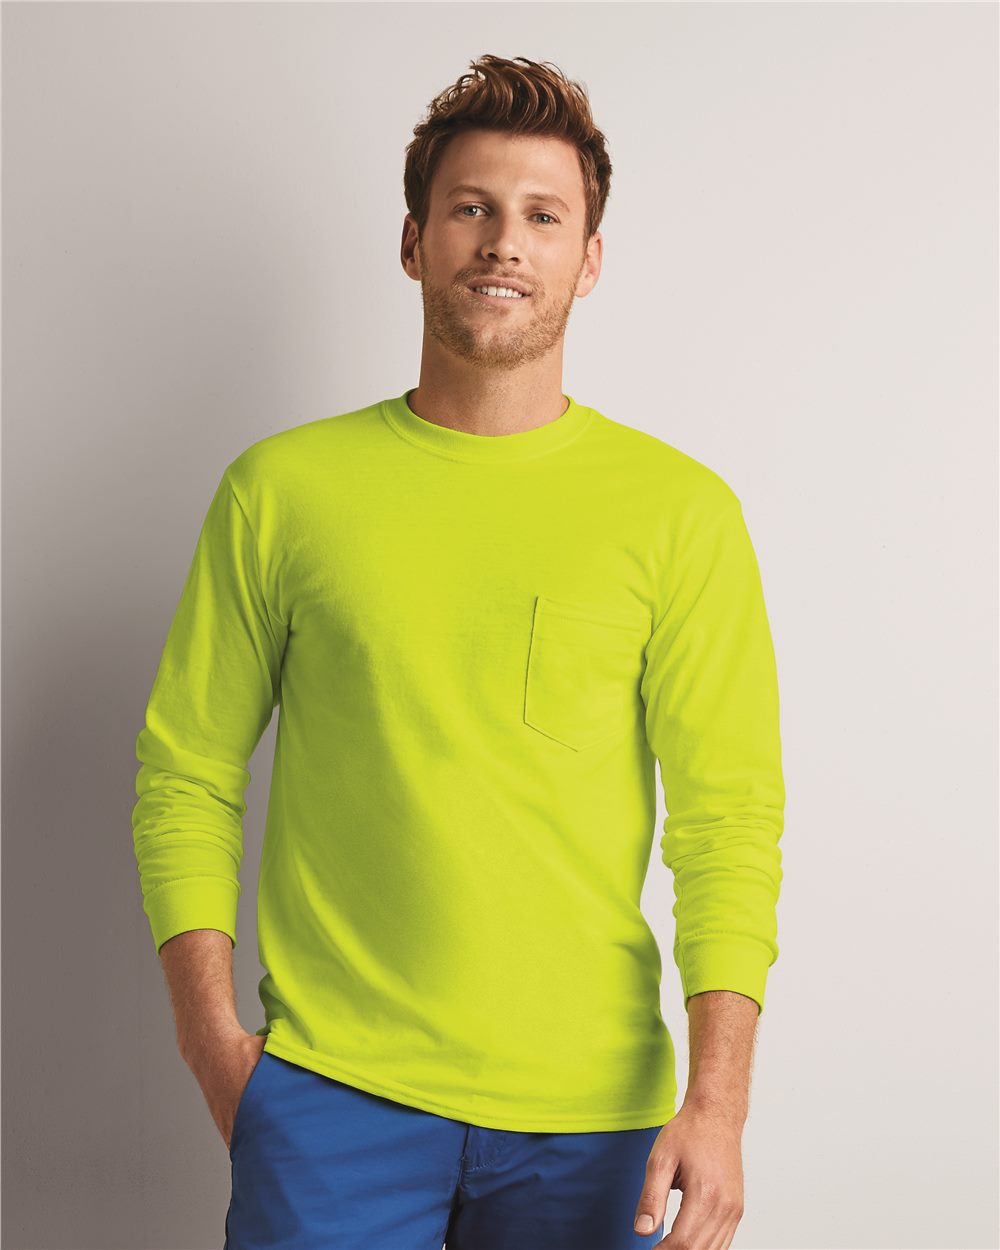 Gildan 2410 Ultra Cotton Long Sleeve T-Shirt with a ...